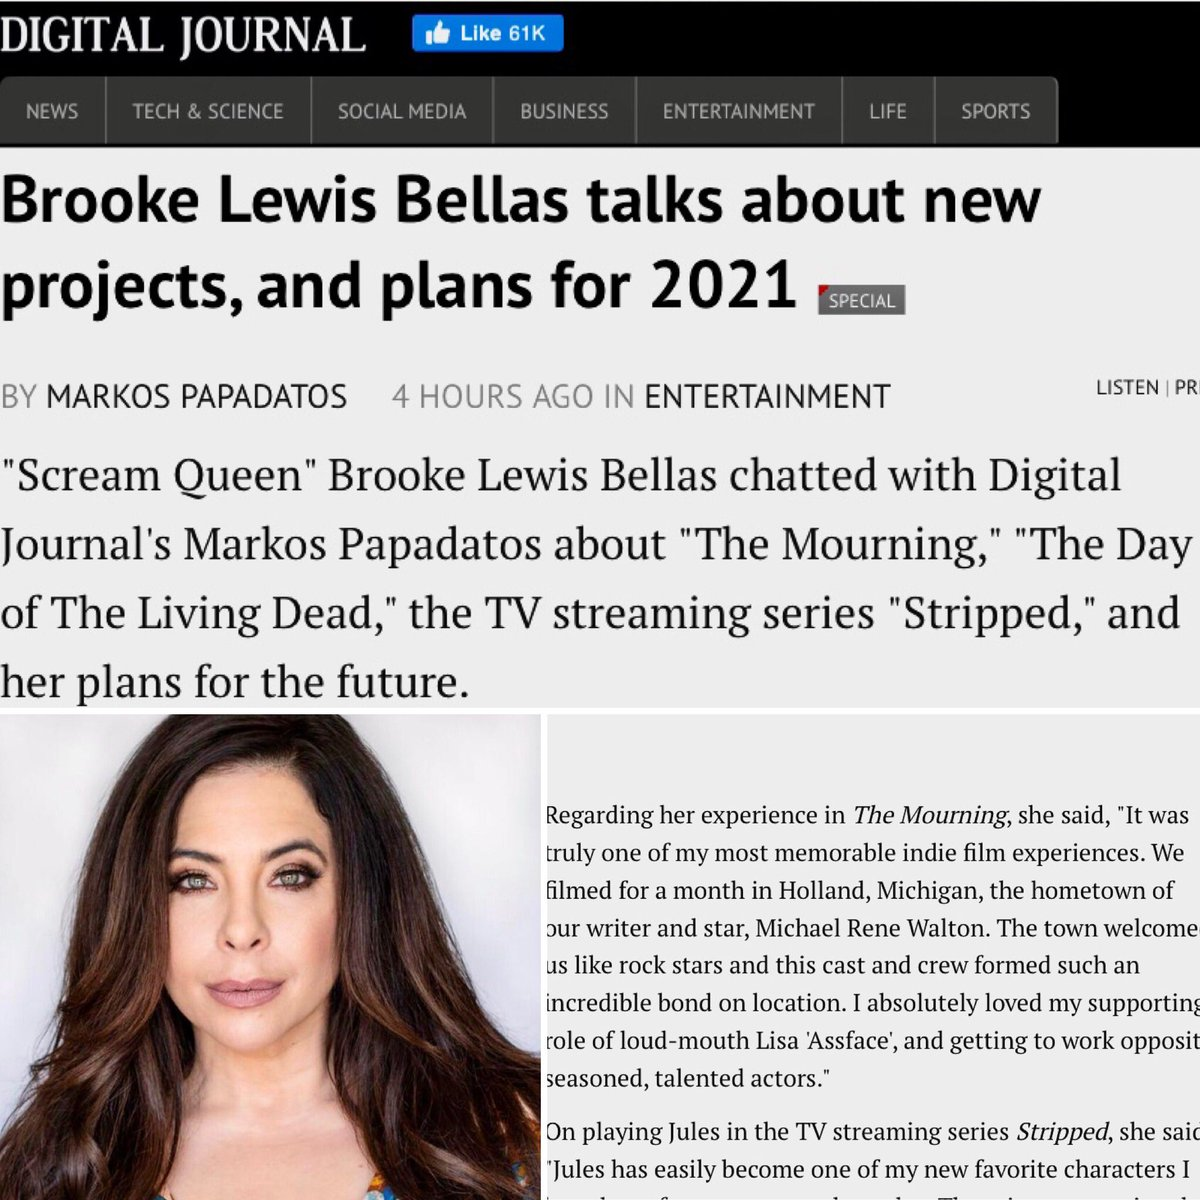 .@powerjournalist @digitaljournal #Thanksgiving & much to be #Thankful for & remaining #positive in #pandemic 🙏 Fantastic #interview from a #media team who has supported #actress #producer #life #BrookeLewisBellas for years❤️ What are you THANKFUL for?🙏 https://t.co/0OPW9Z1ptP https://t.co/OnFKemtjaG